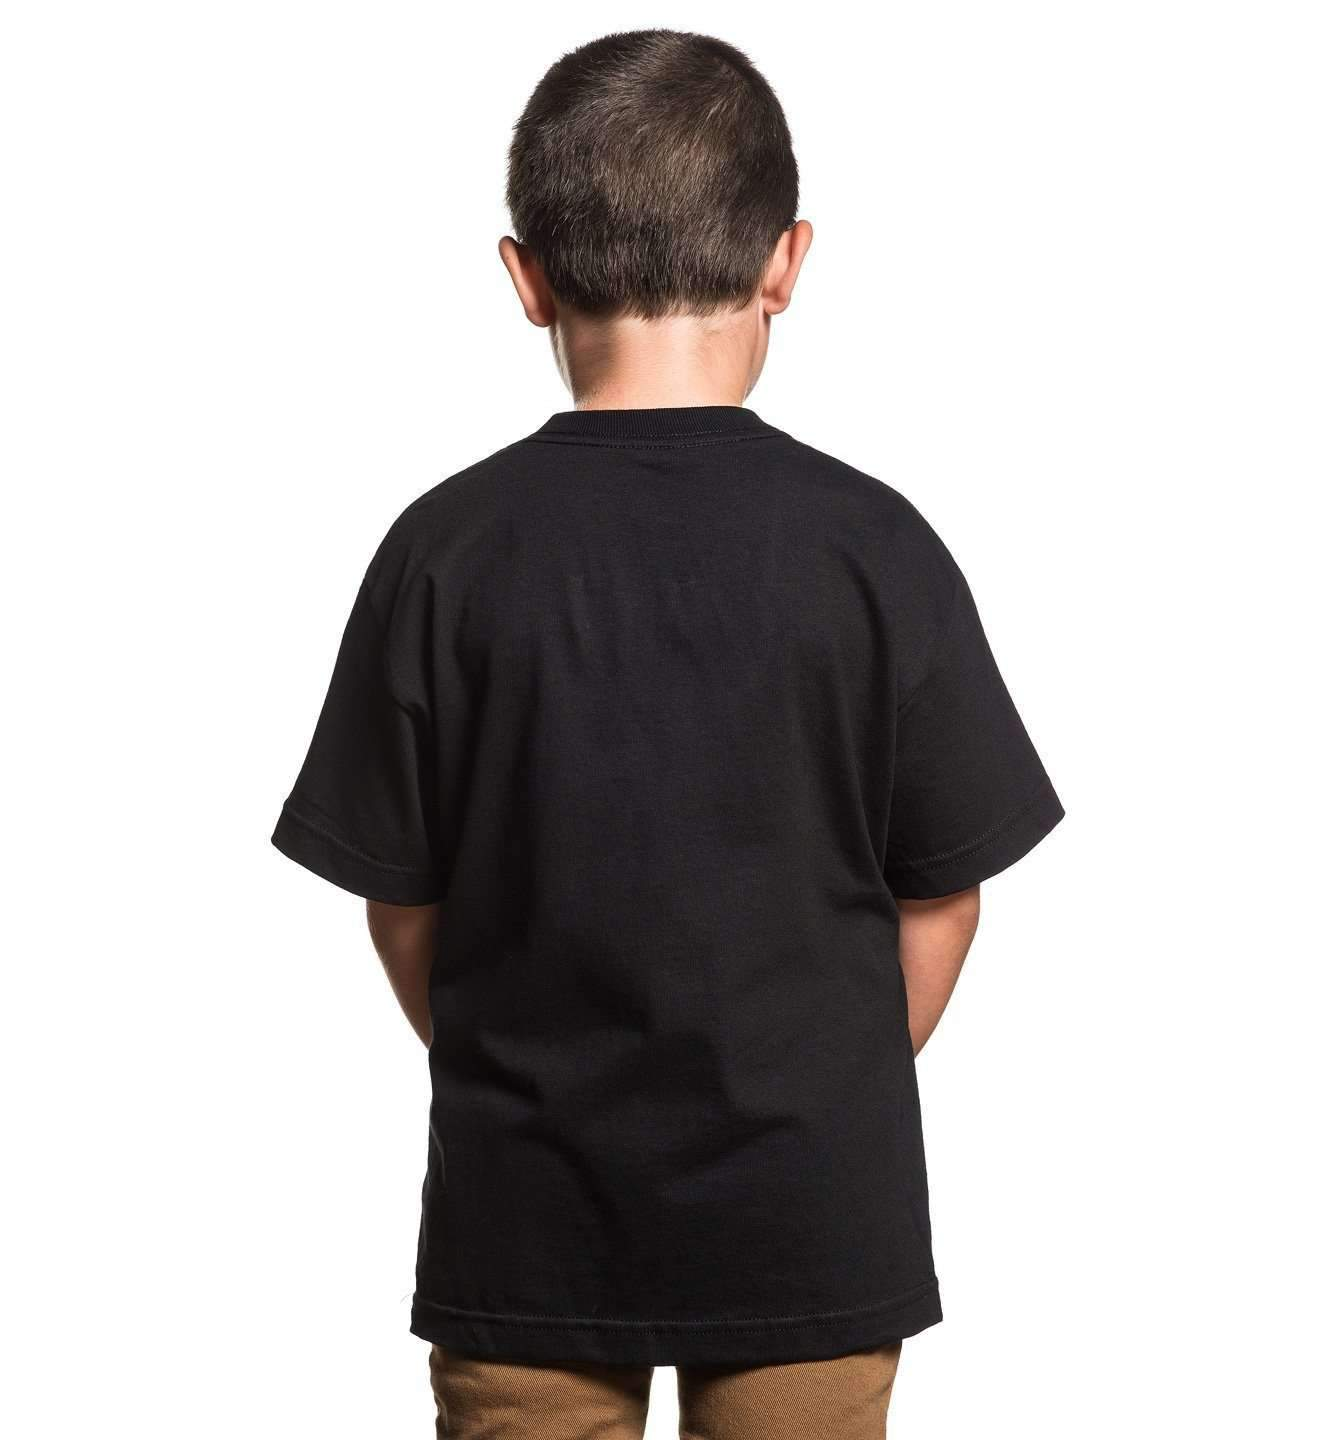 BOH YOUTH S/S TEE BLACK